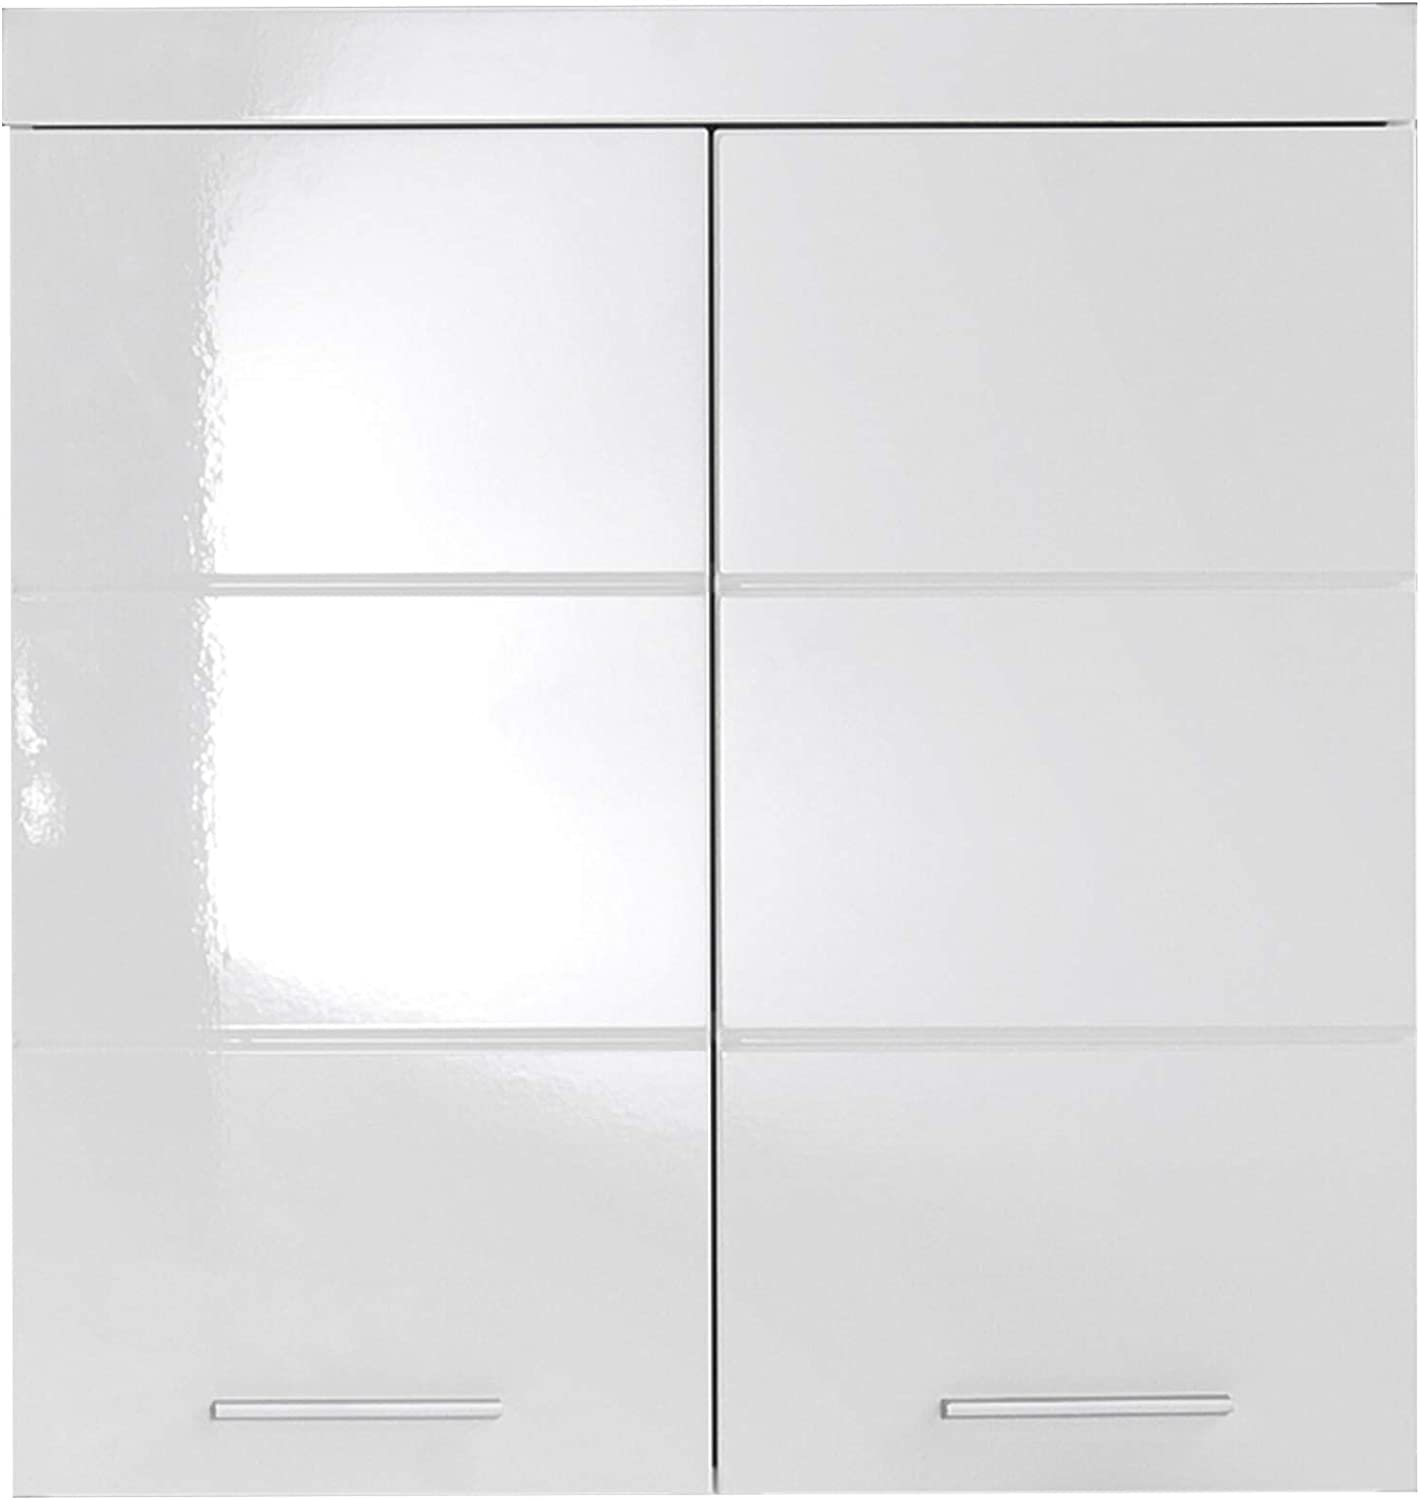 Trendteam Bathroom Wall Cabinet With Plenty Of Storage Space, Amanda, White High Gloss, 73 x 77 x 23 cm